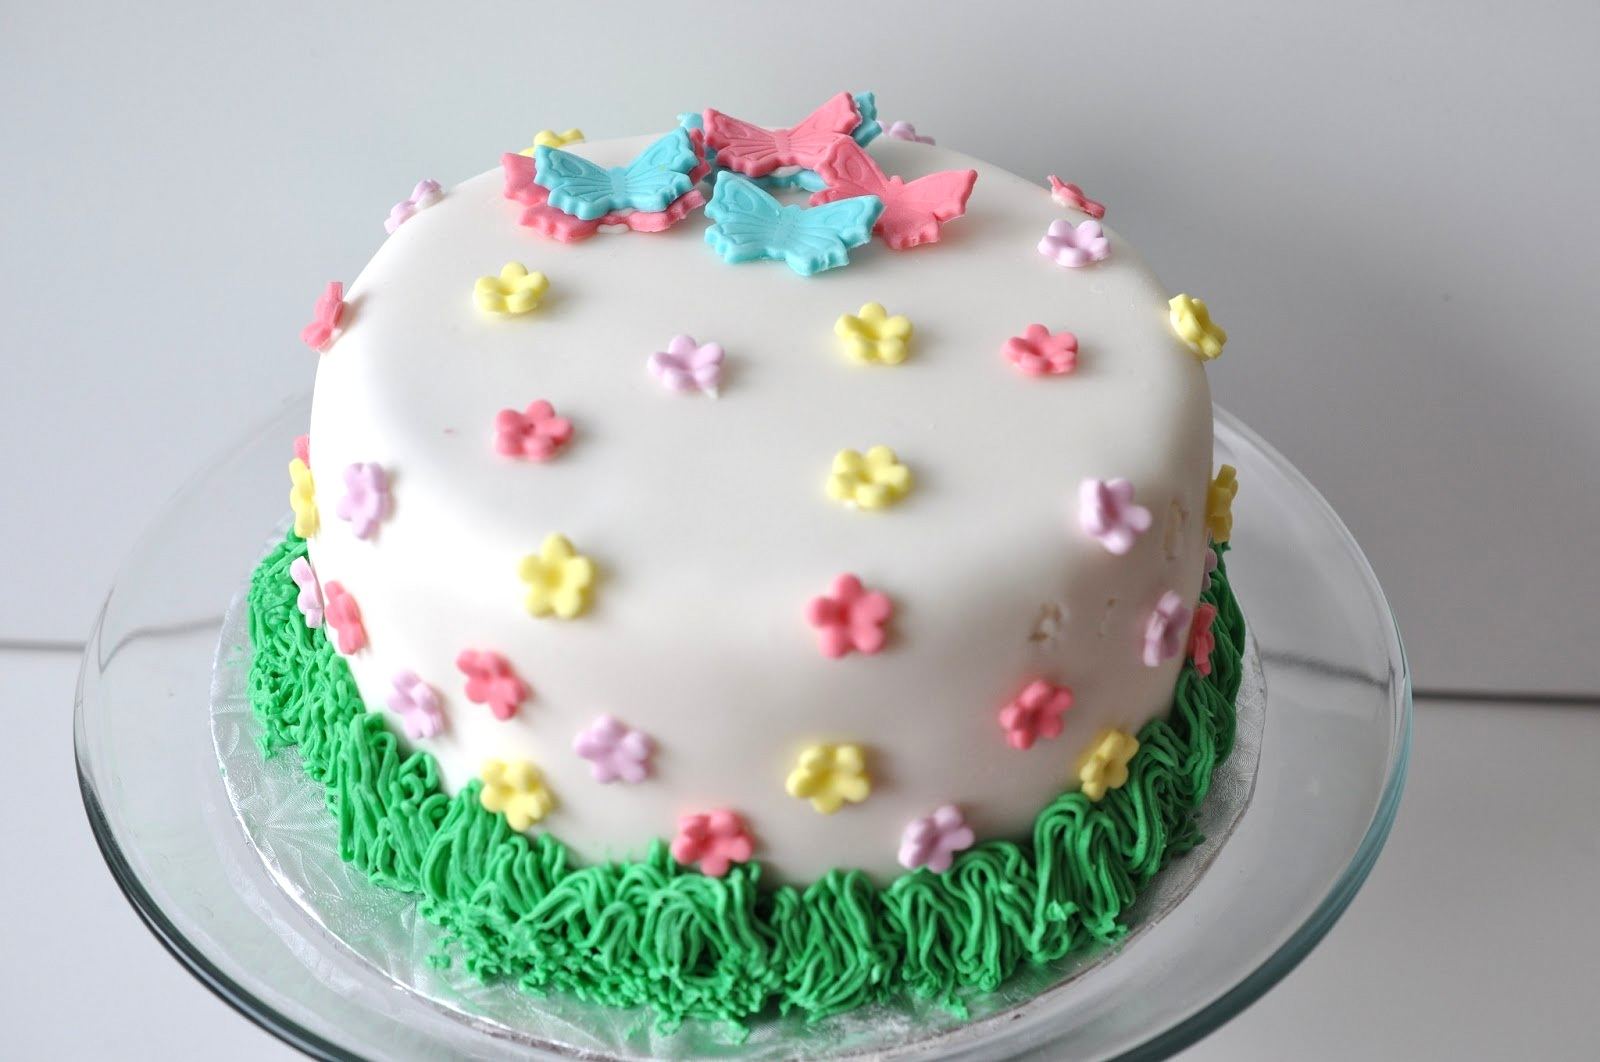 Cake Decorating Icing Recipes Easy